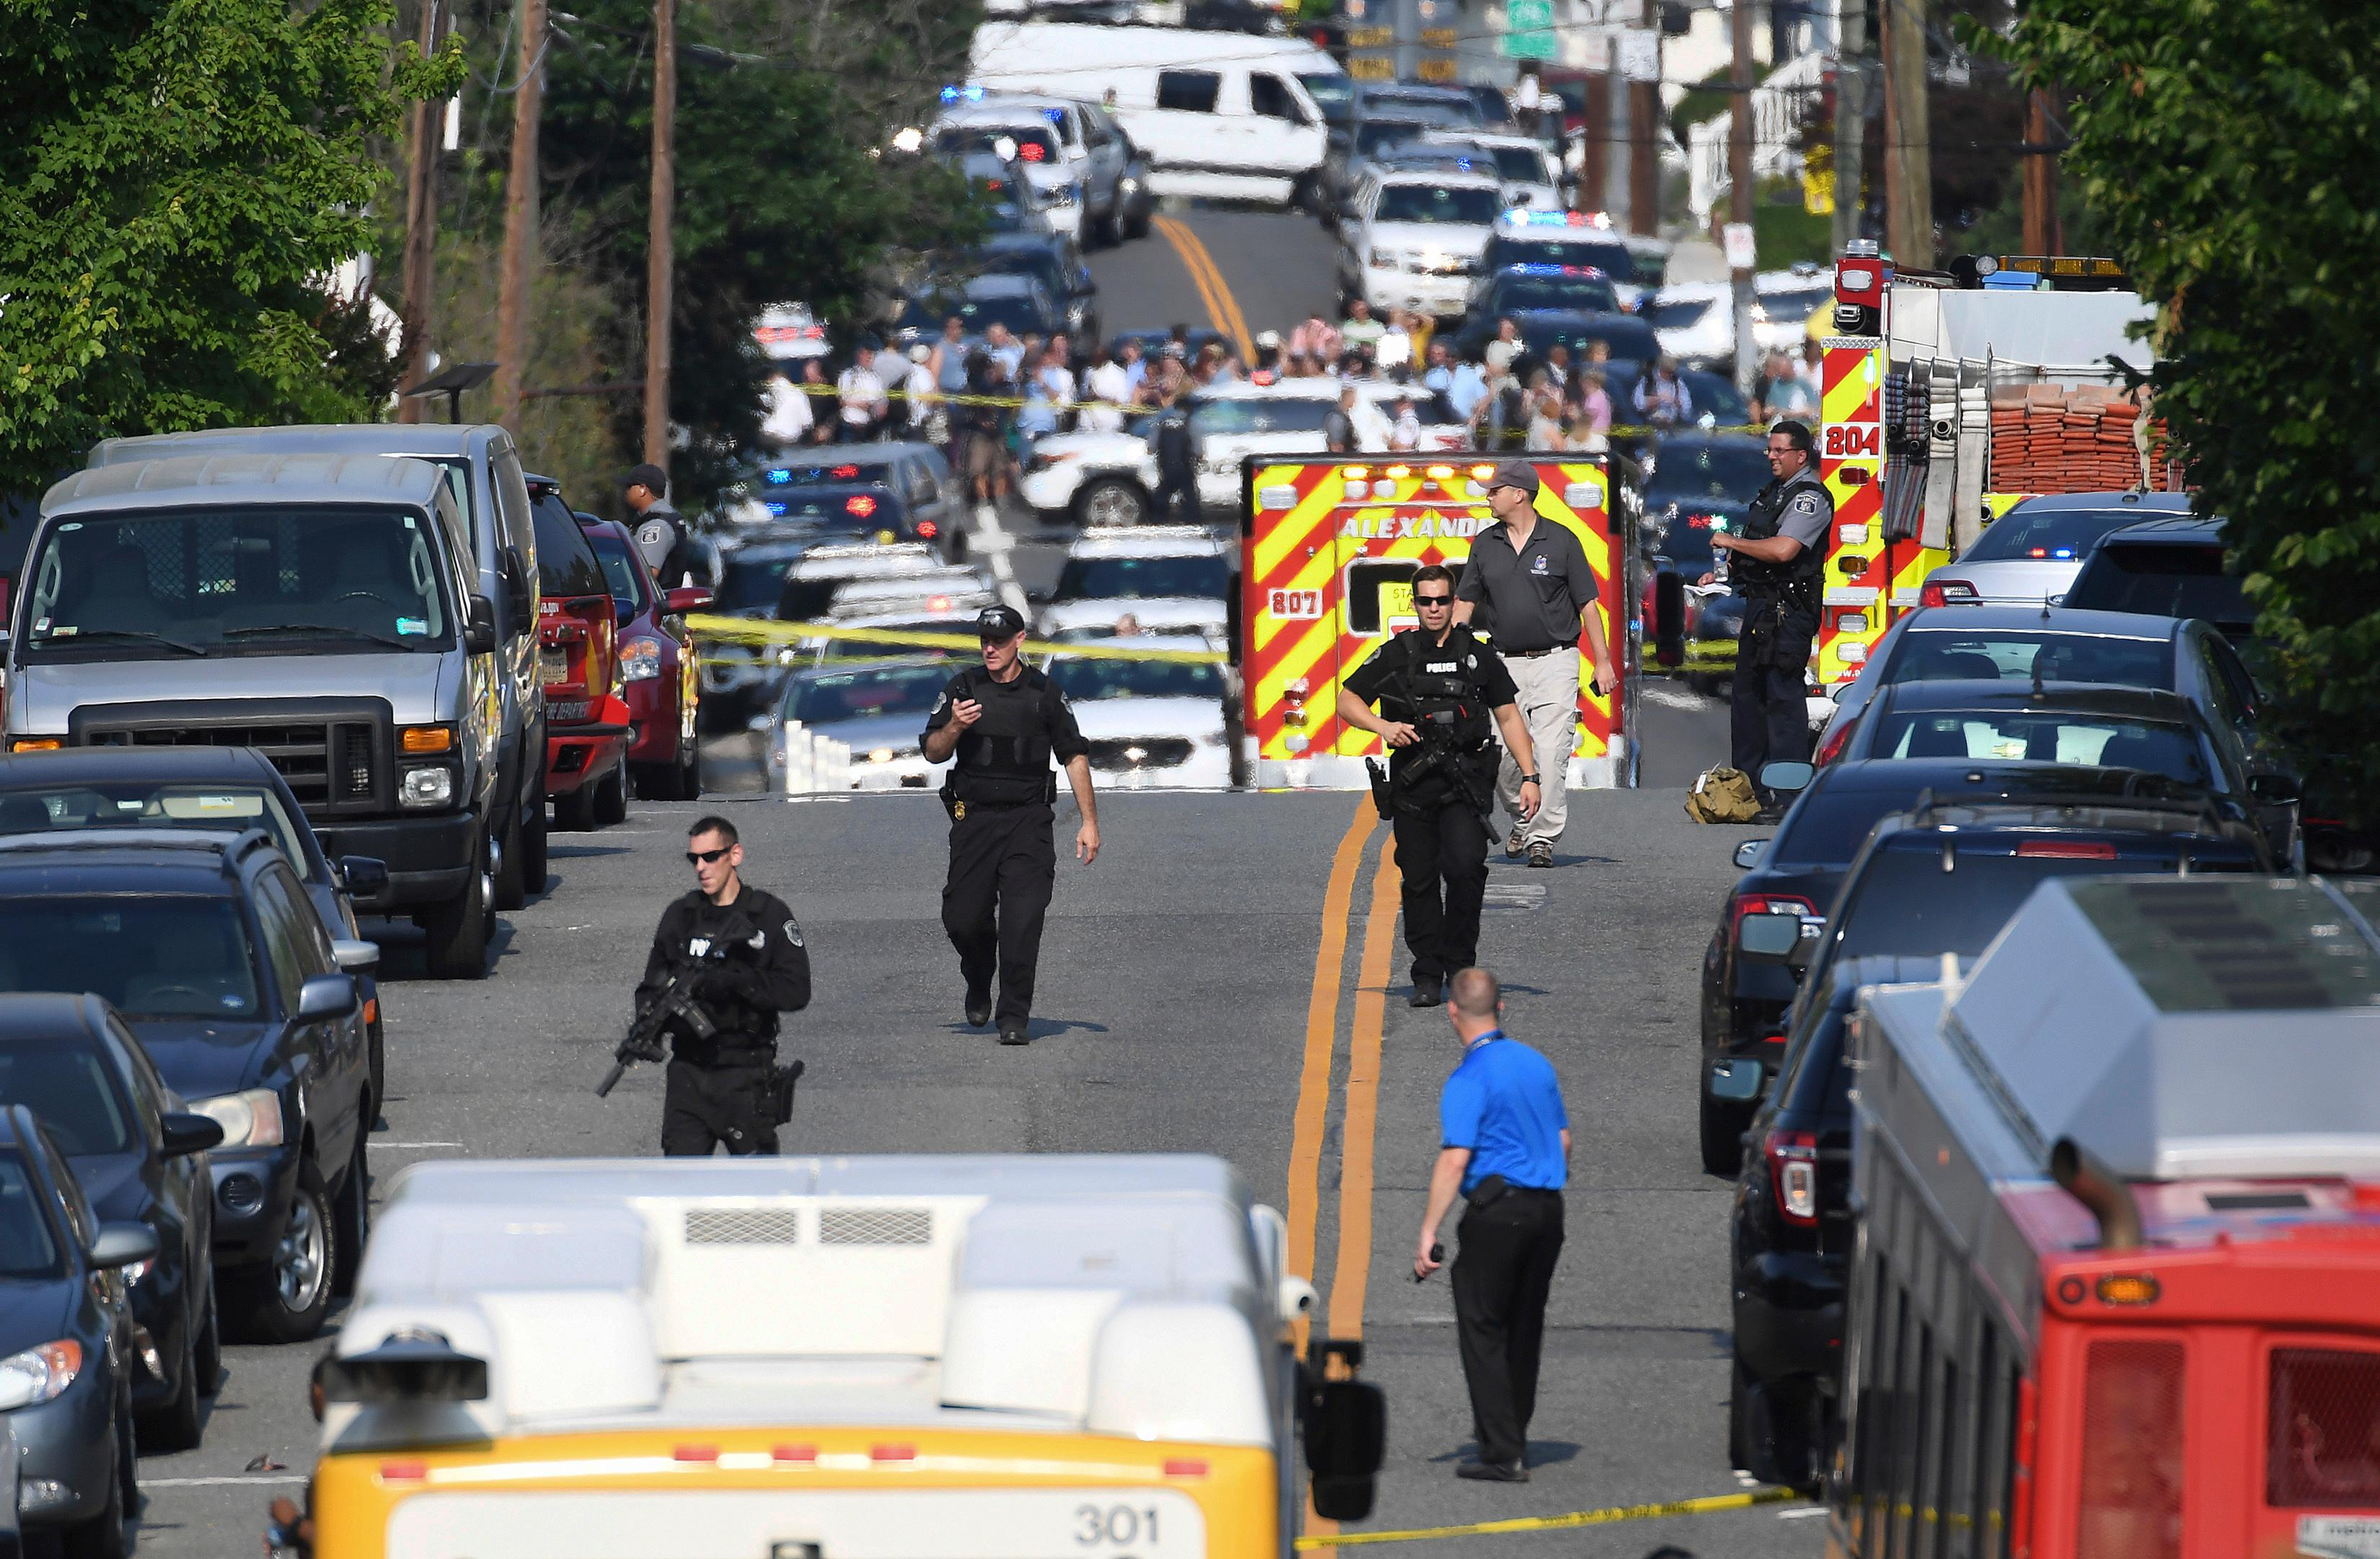 Emergency personnel respond after reports of shots fired Wednesday June 14, 2017 in Alexandria, Va.   A top House Republican, Steve Scalise of Louisiana, was shot by a rifle-wielding gunman early Wednesday at a congressional baseball practice just outside of Washington. Several other people were also wounded, officials said.  (Matt McClain/The Washington Post via AP)